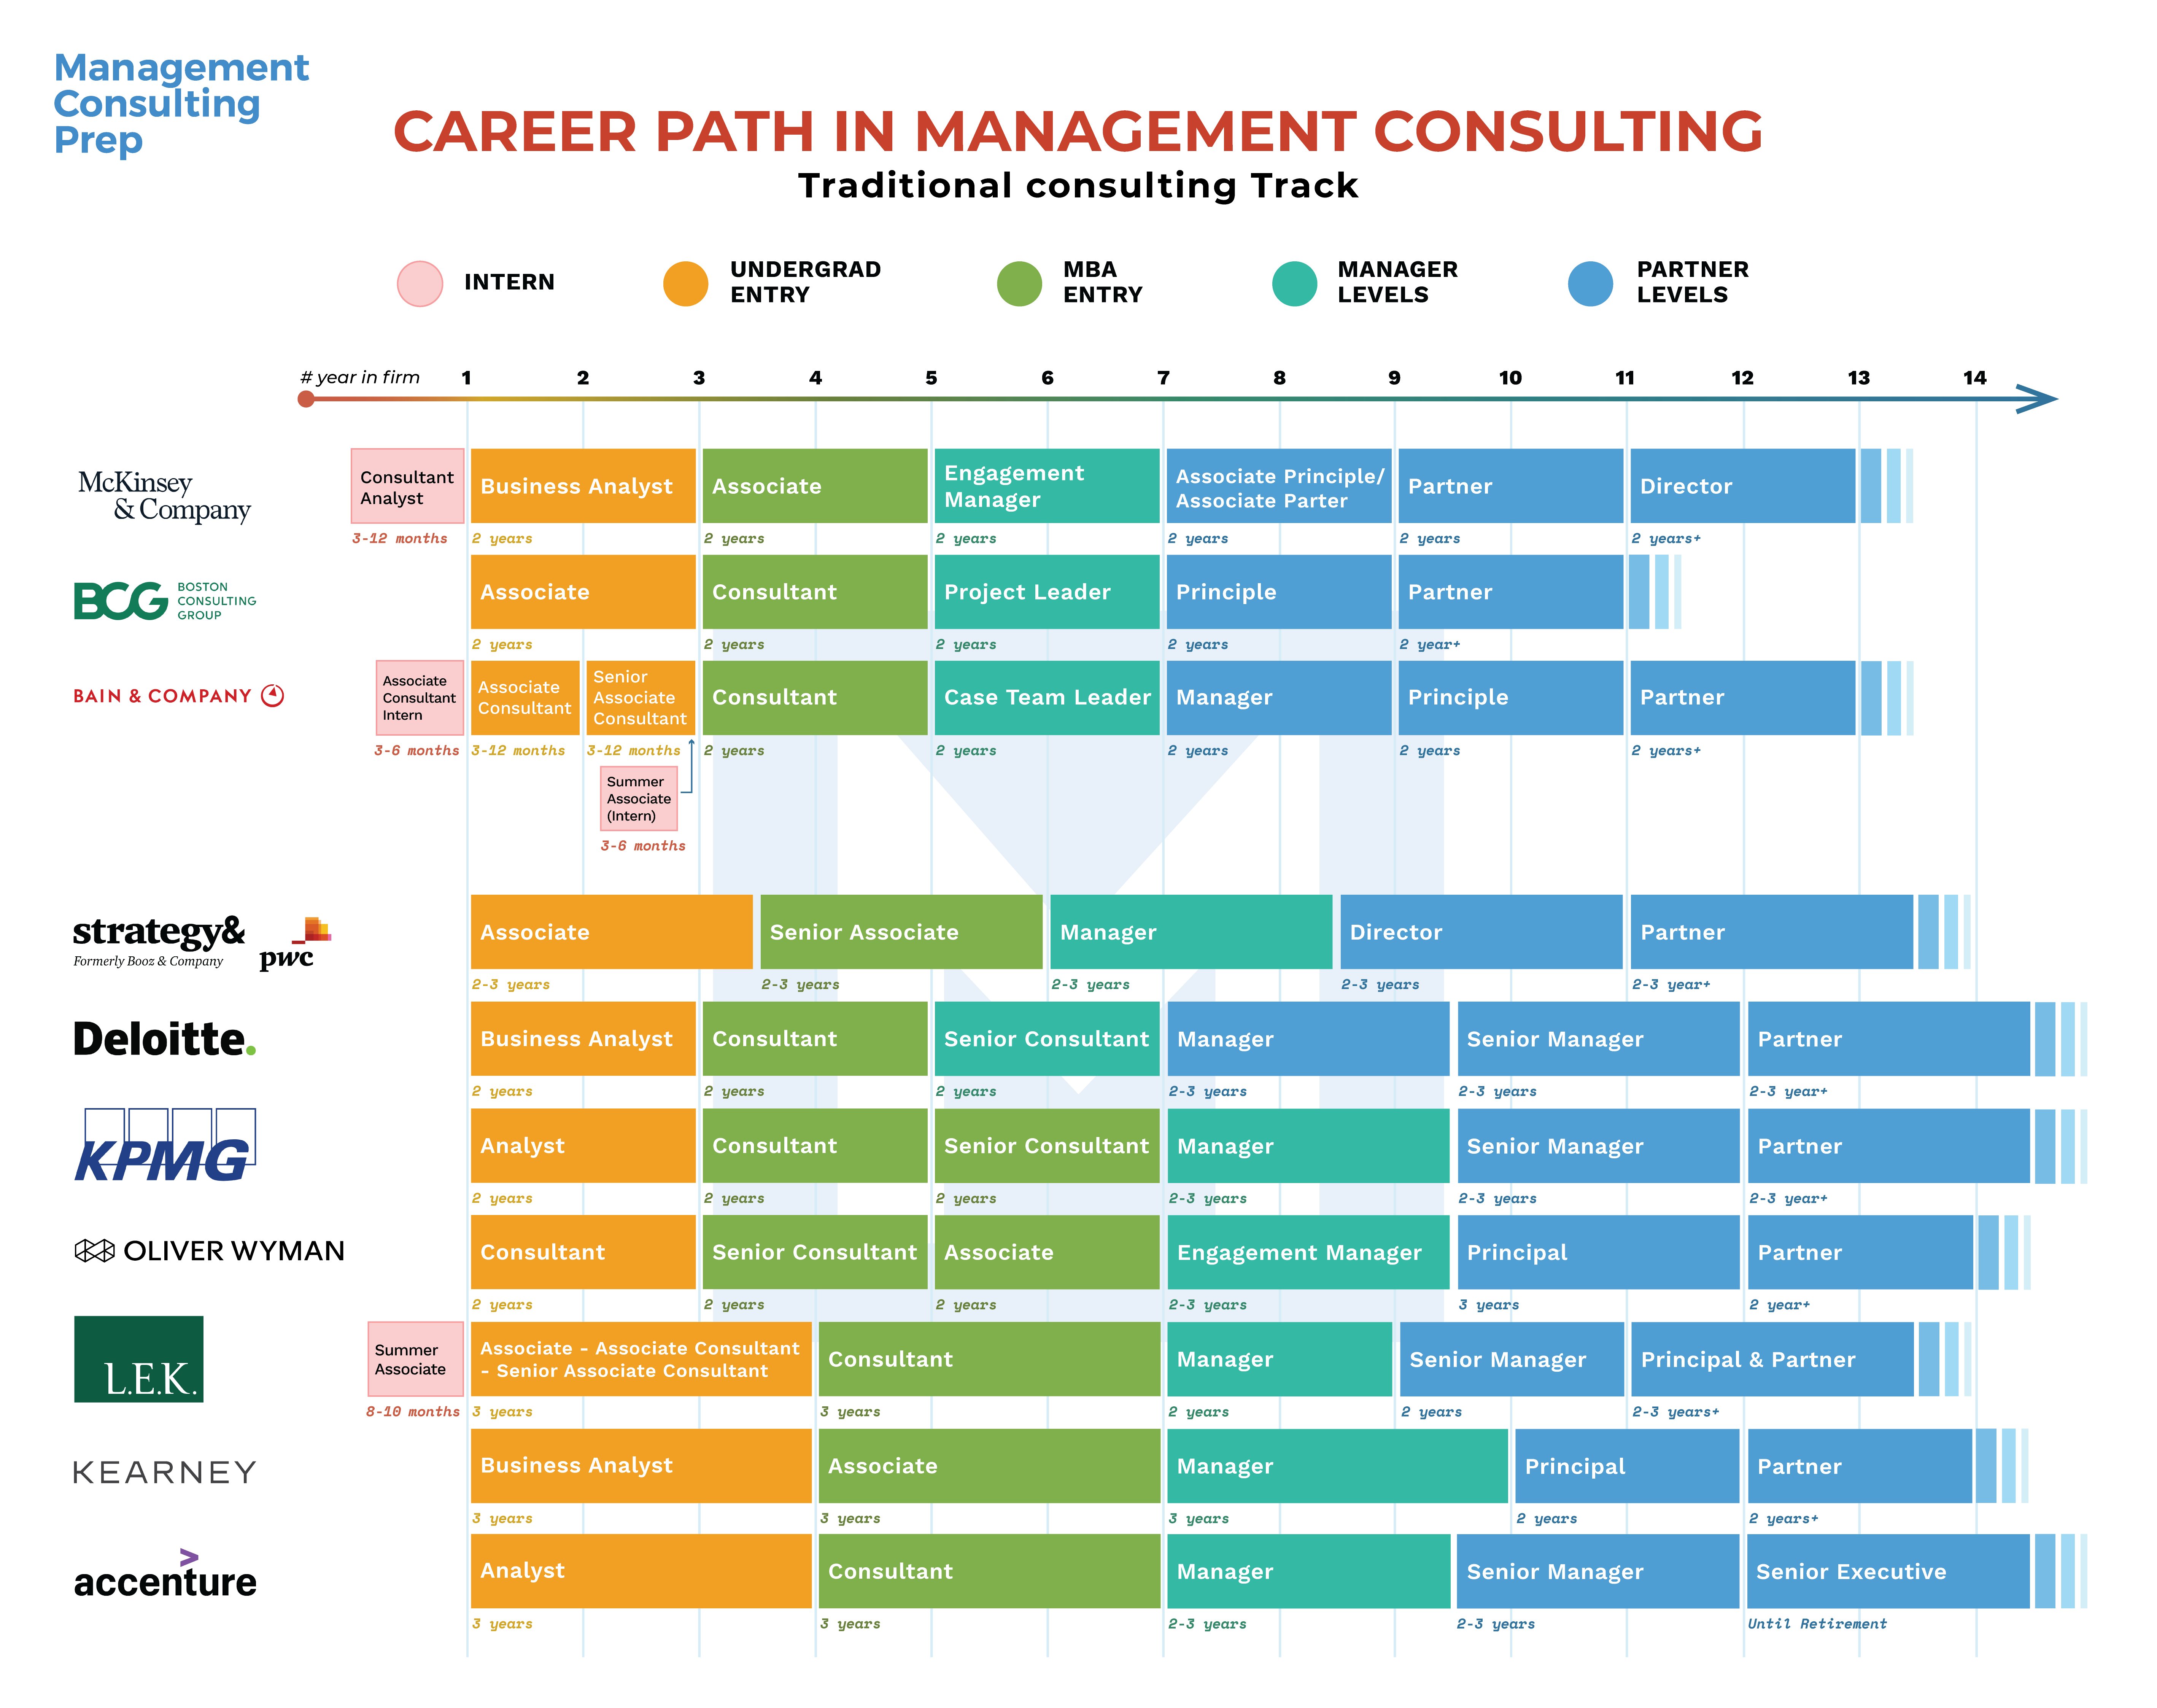 Career Path in Management Consulting